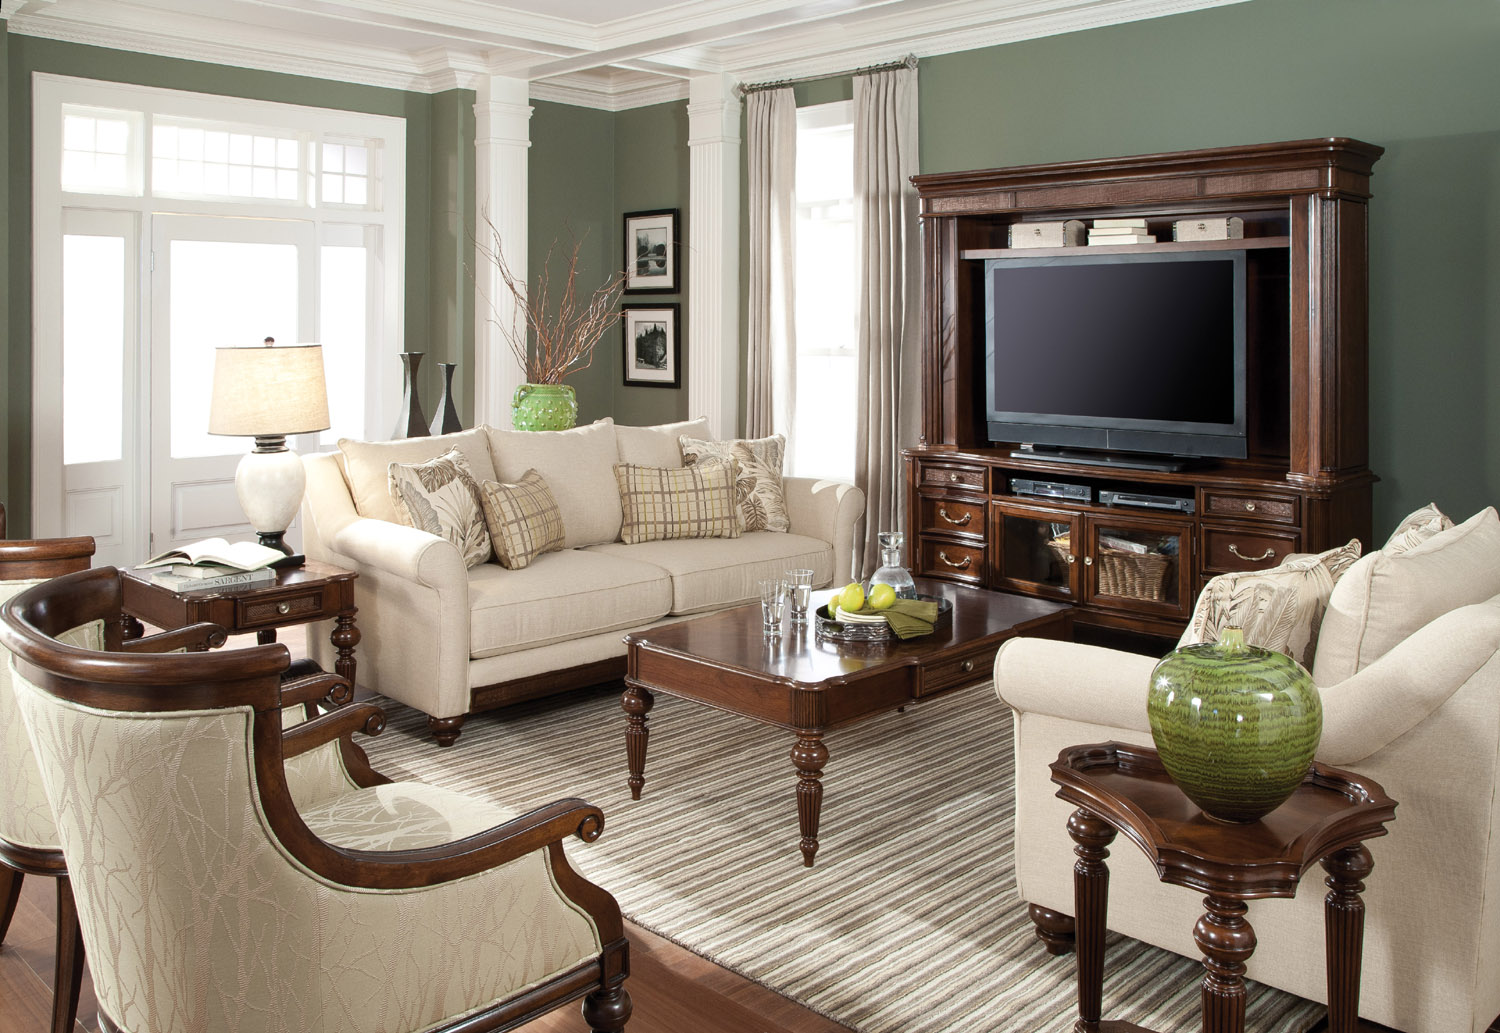 Tranquil bay sofa set fairmont designs home gallery stores